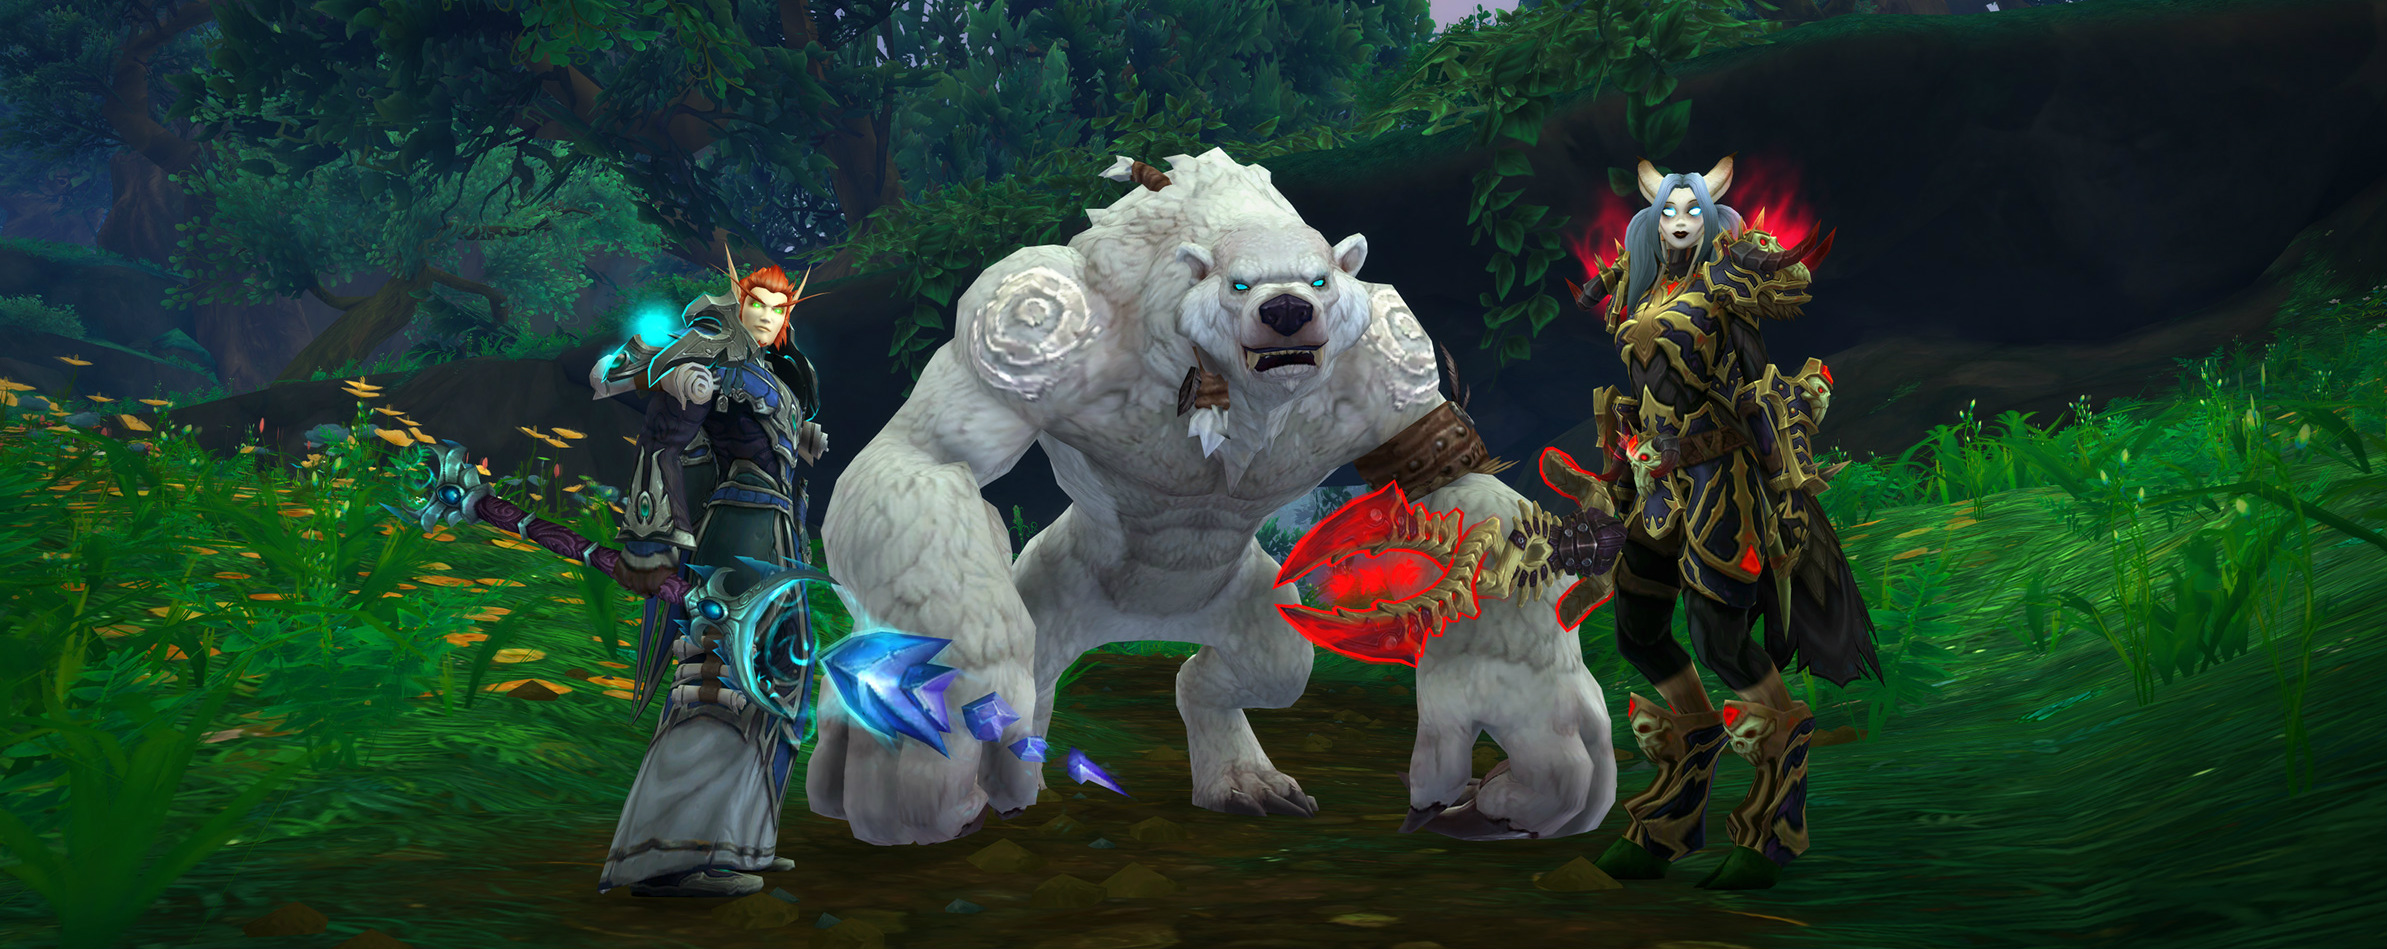 WoW Devs Promise Improvements to Battle For Azeroth's Rocky Status